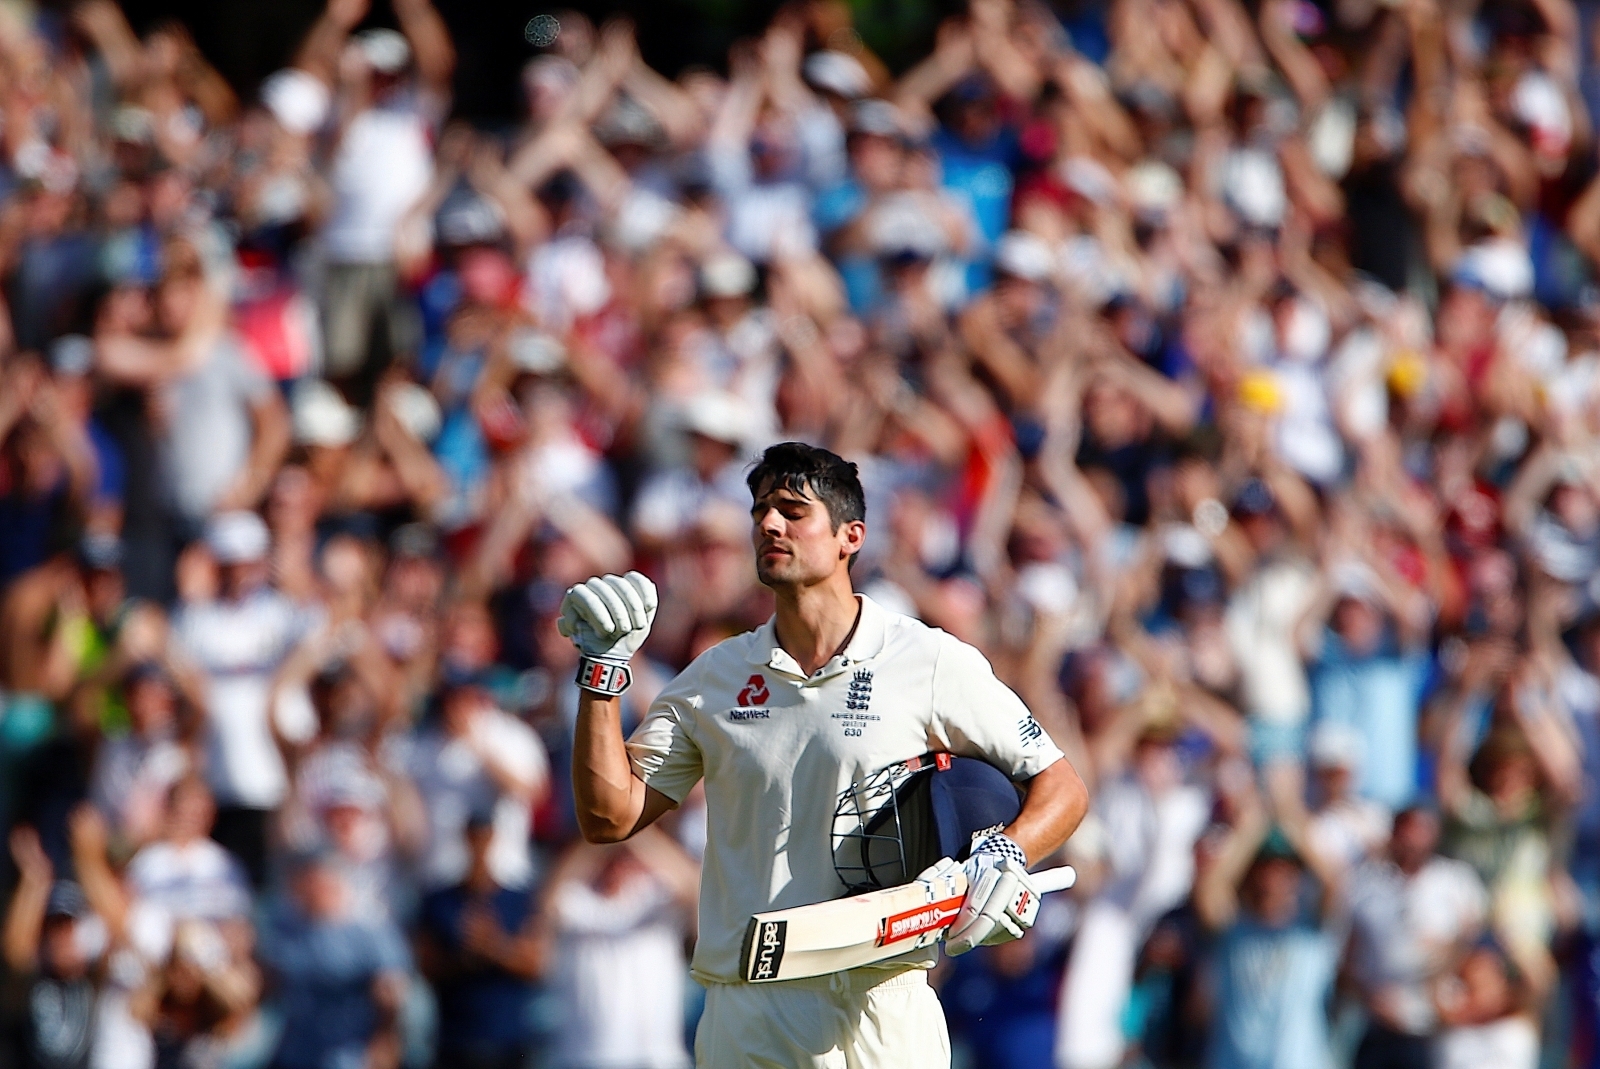 Cook shines as England shows fight in Ashes